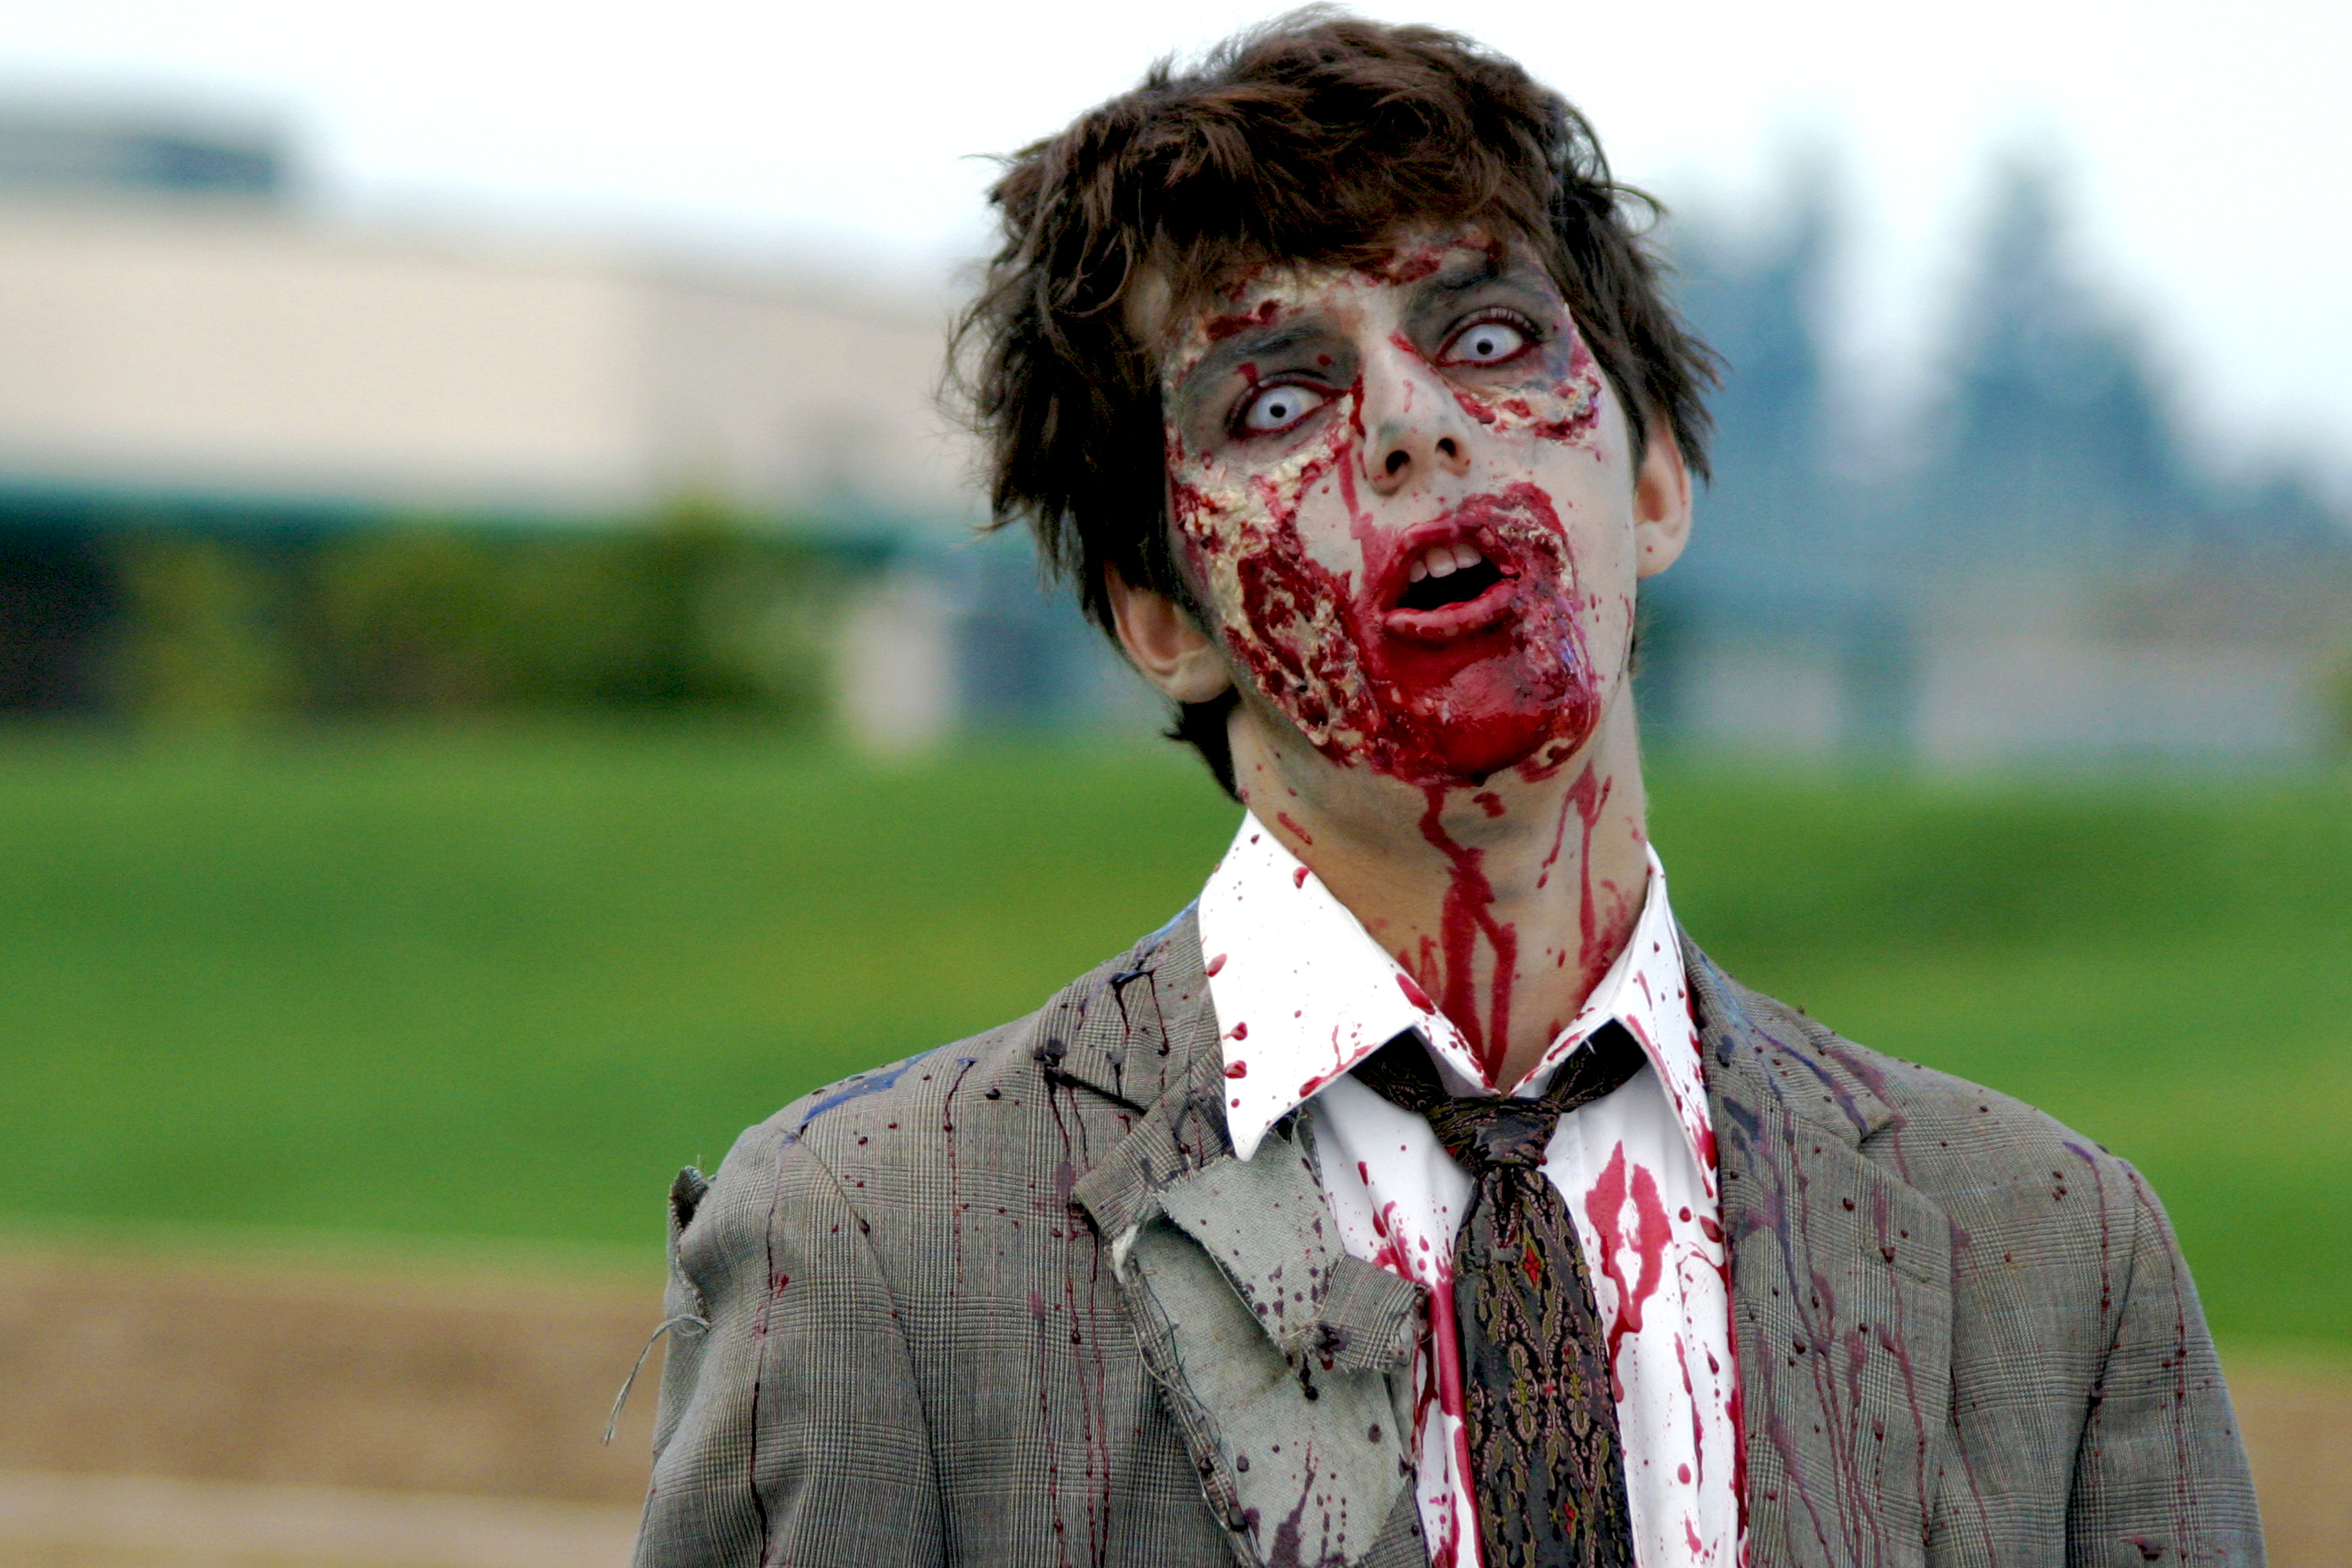 the most important factor for surviving a zombie apocalypse